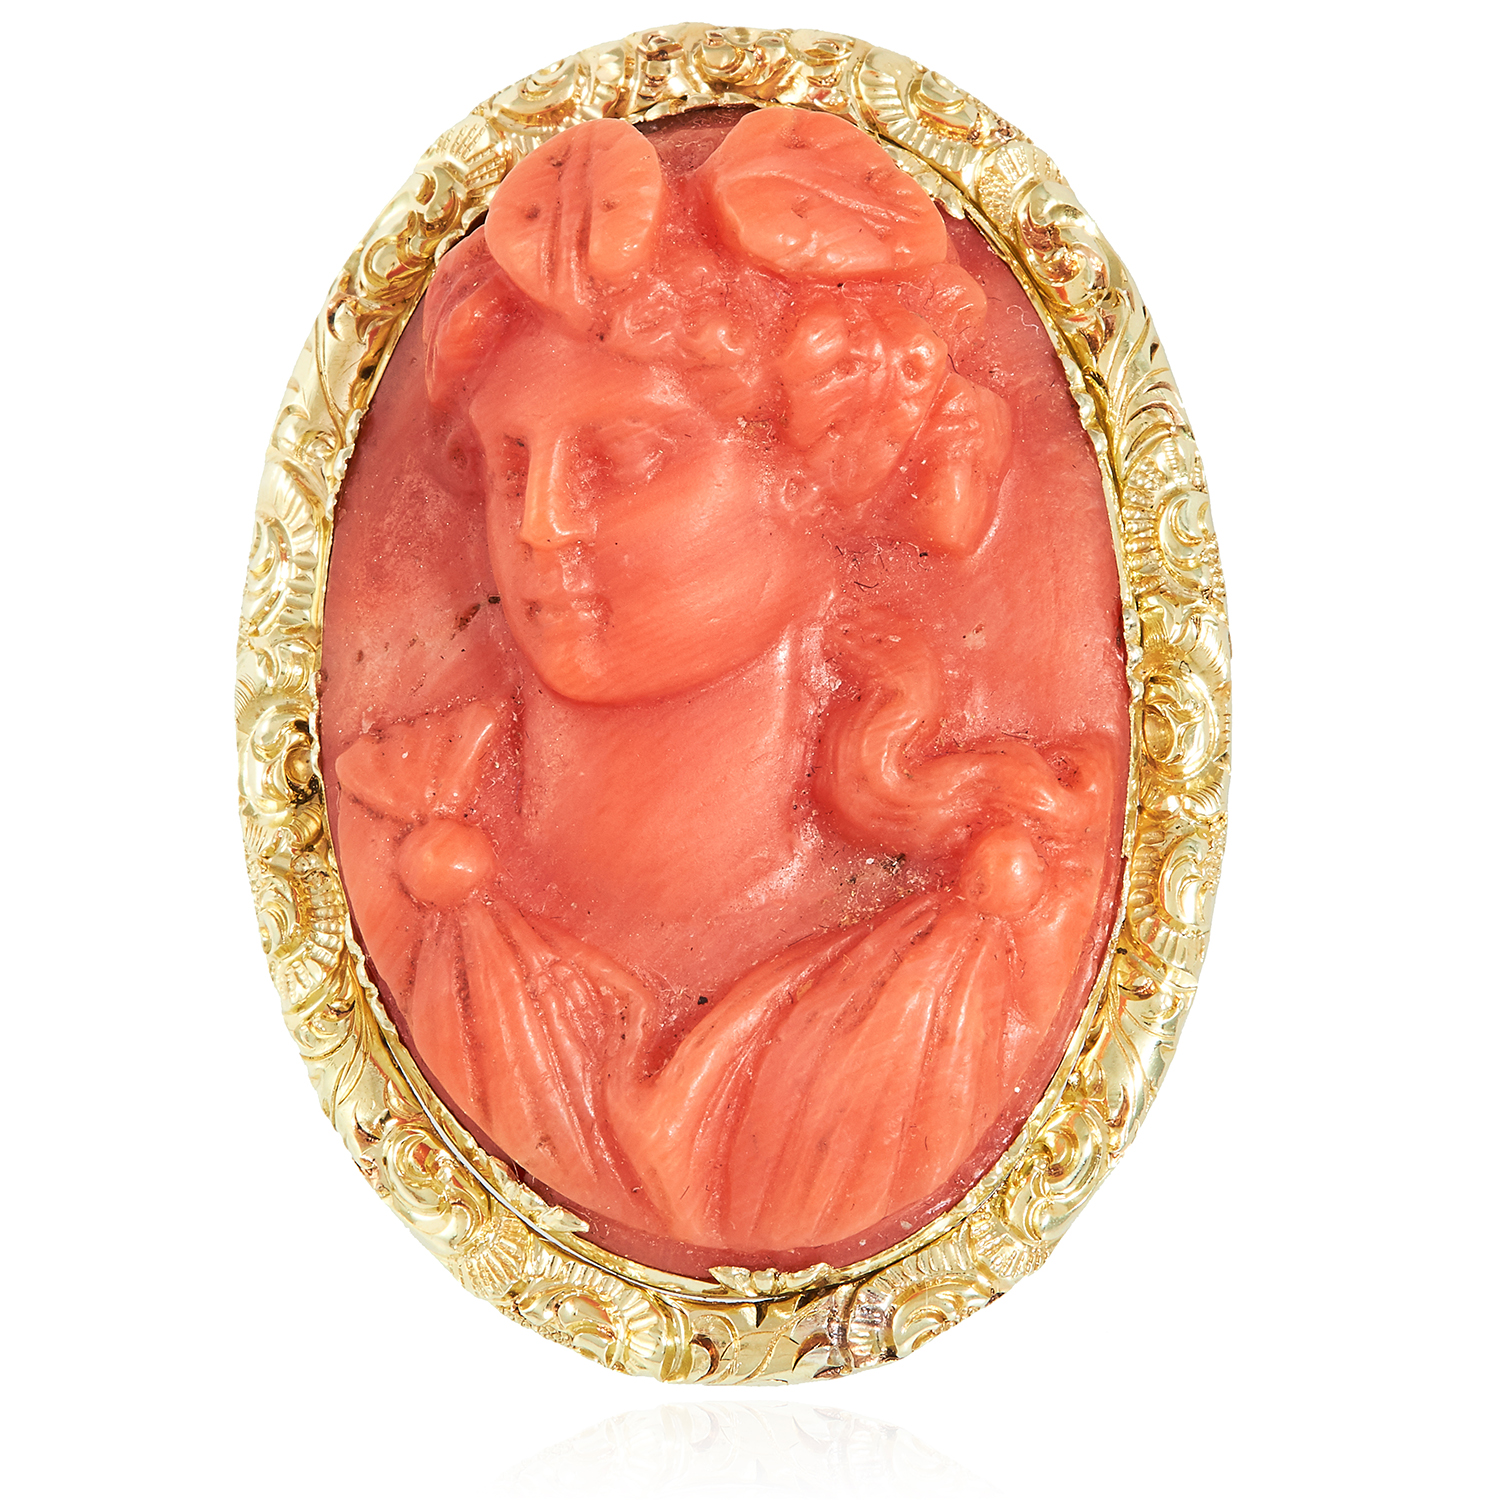 Los 56 - AN ANTIQUE CARVED CORAL CAMEO RING, 19TH CENTURY in high carat yellow gold, the large oval cameo